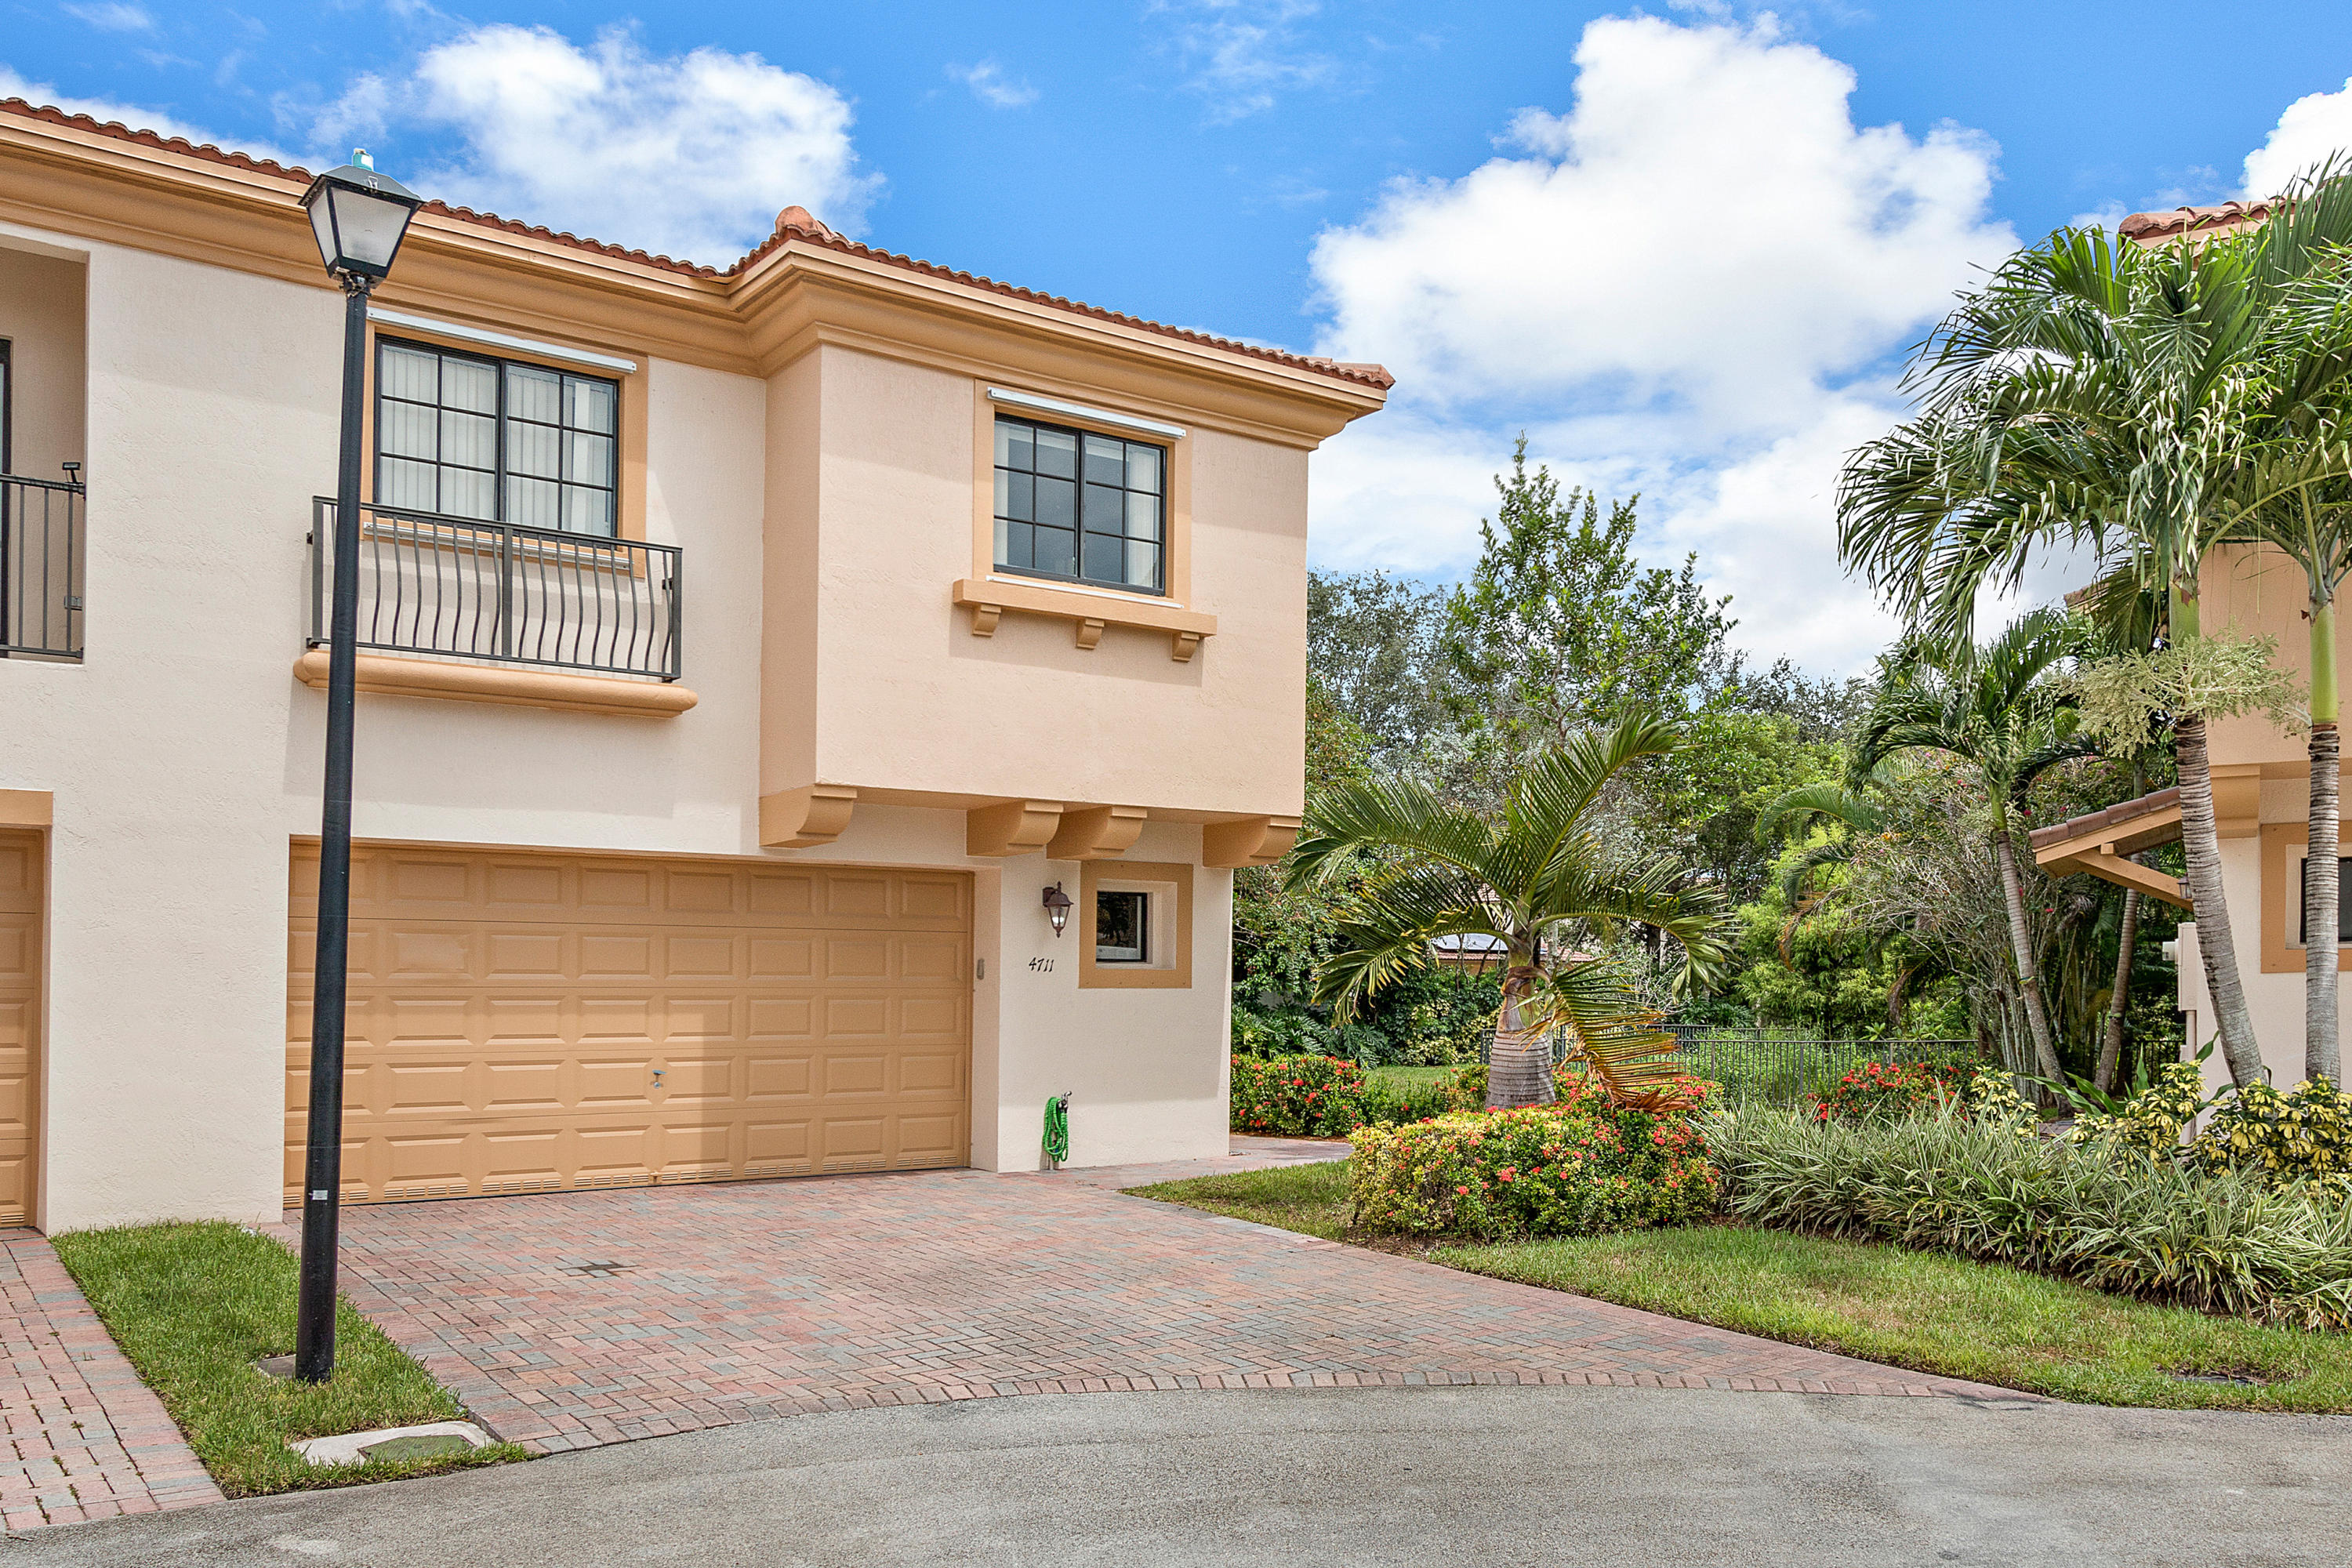 4711 Grand Cypress Circle, Coconut Creek, Florida 33073, 3 Bedrooms Bedrooms, ,2.1 BathroomsBathrooms,Townhouse,For Sale,Grand Cypress,RX-10464110